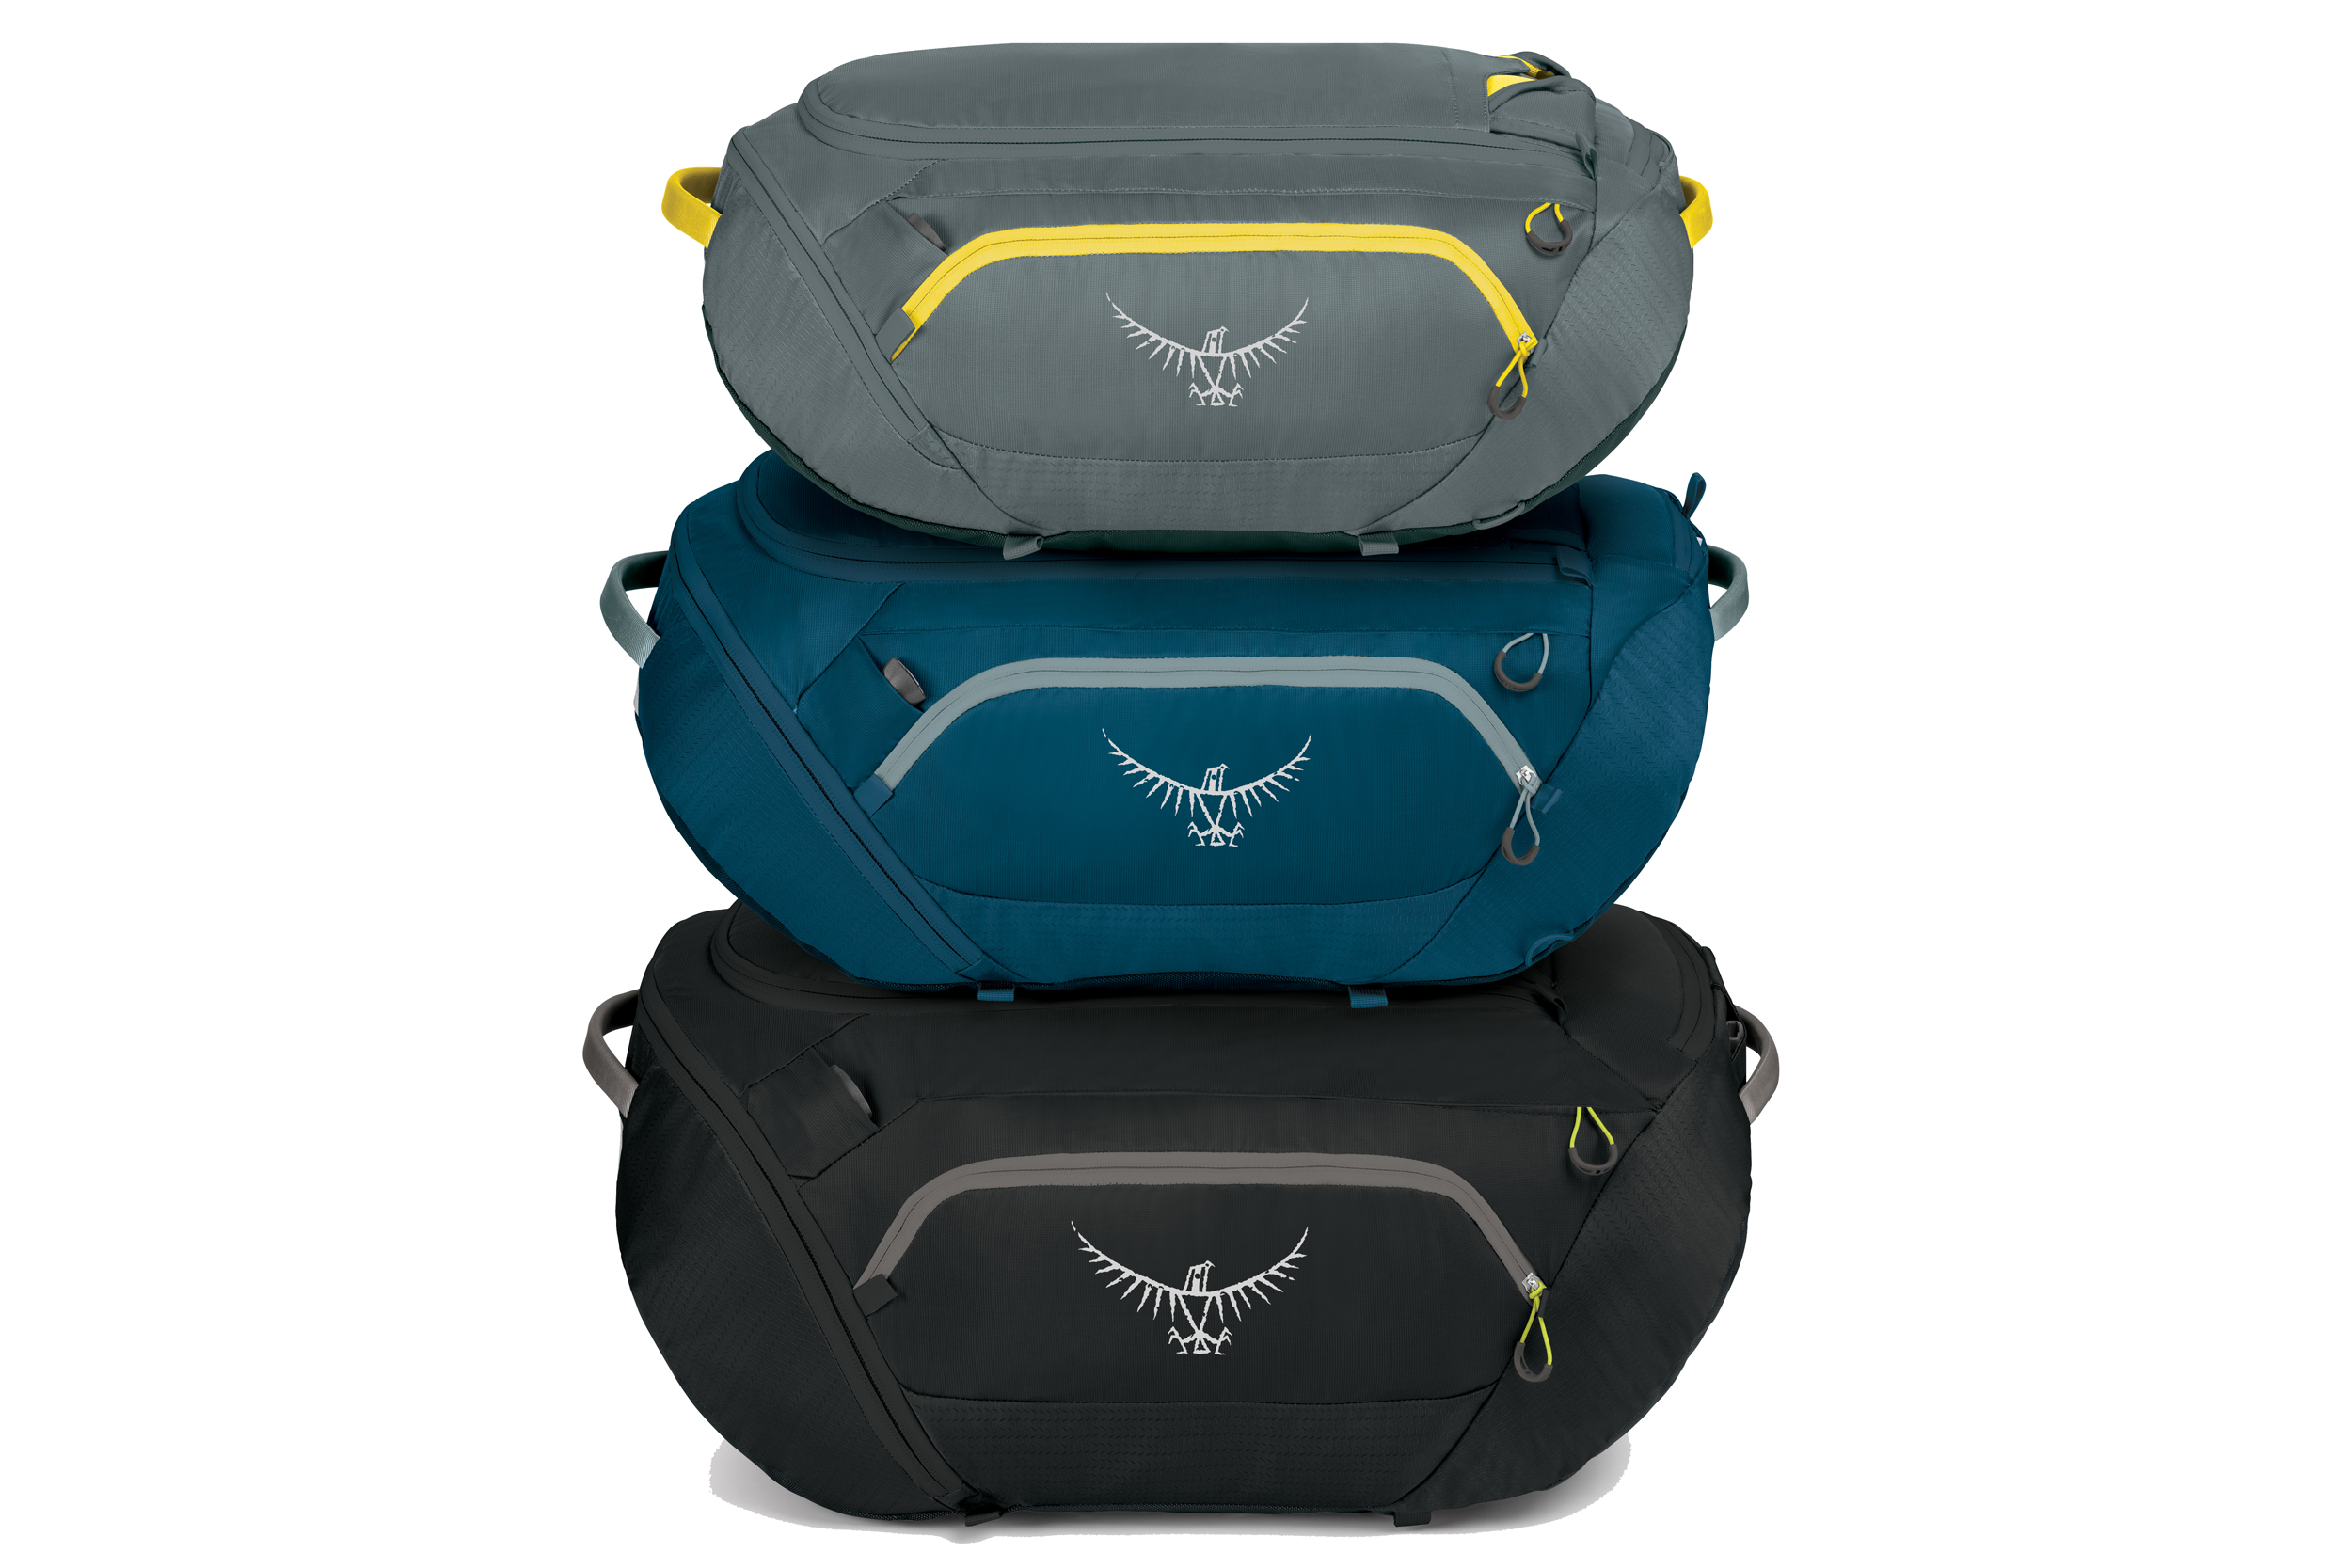 2d0331b43a Osprey Launches Sport-Specific Duffles